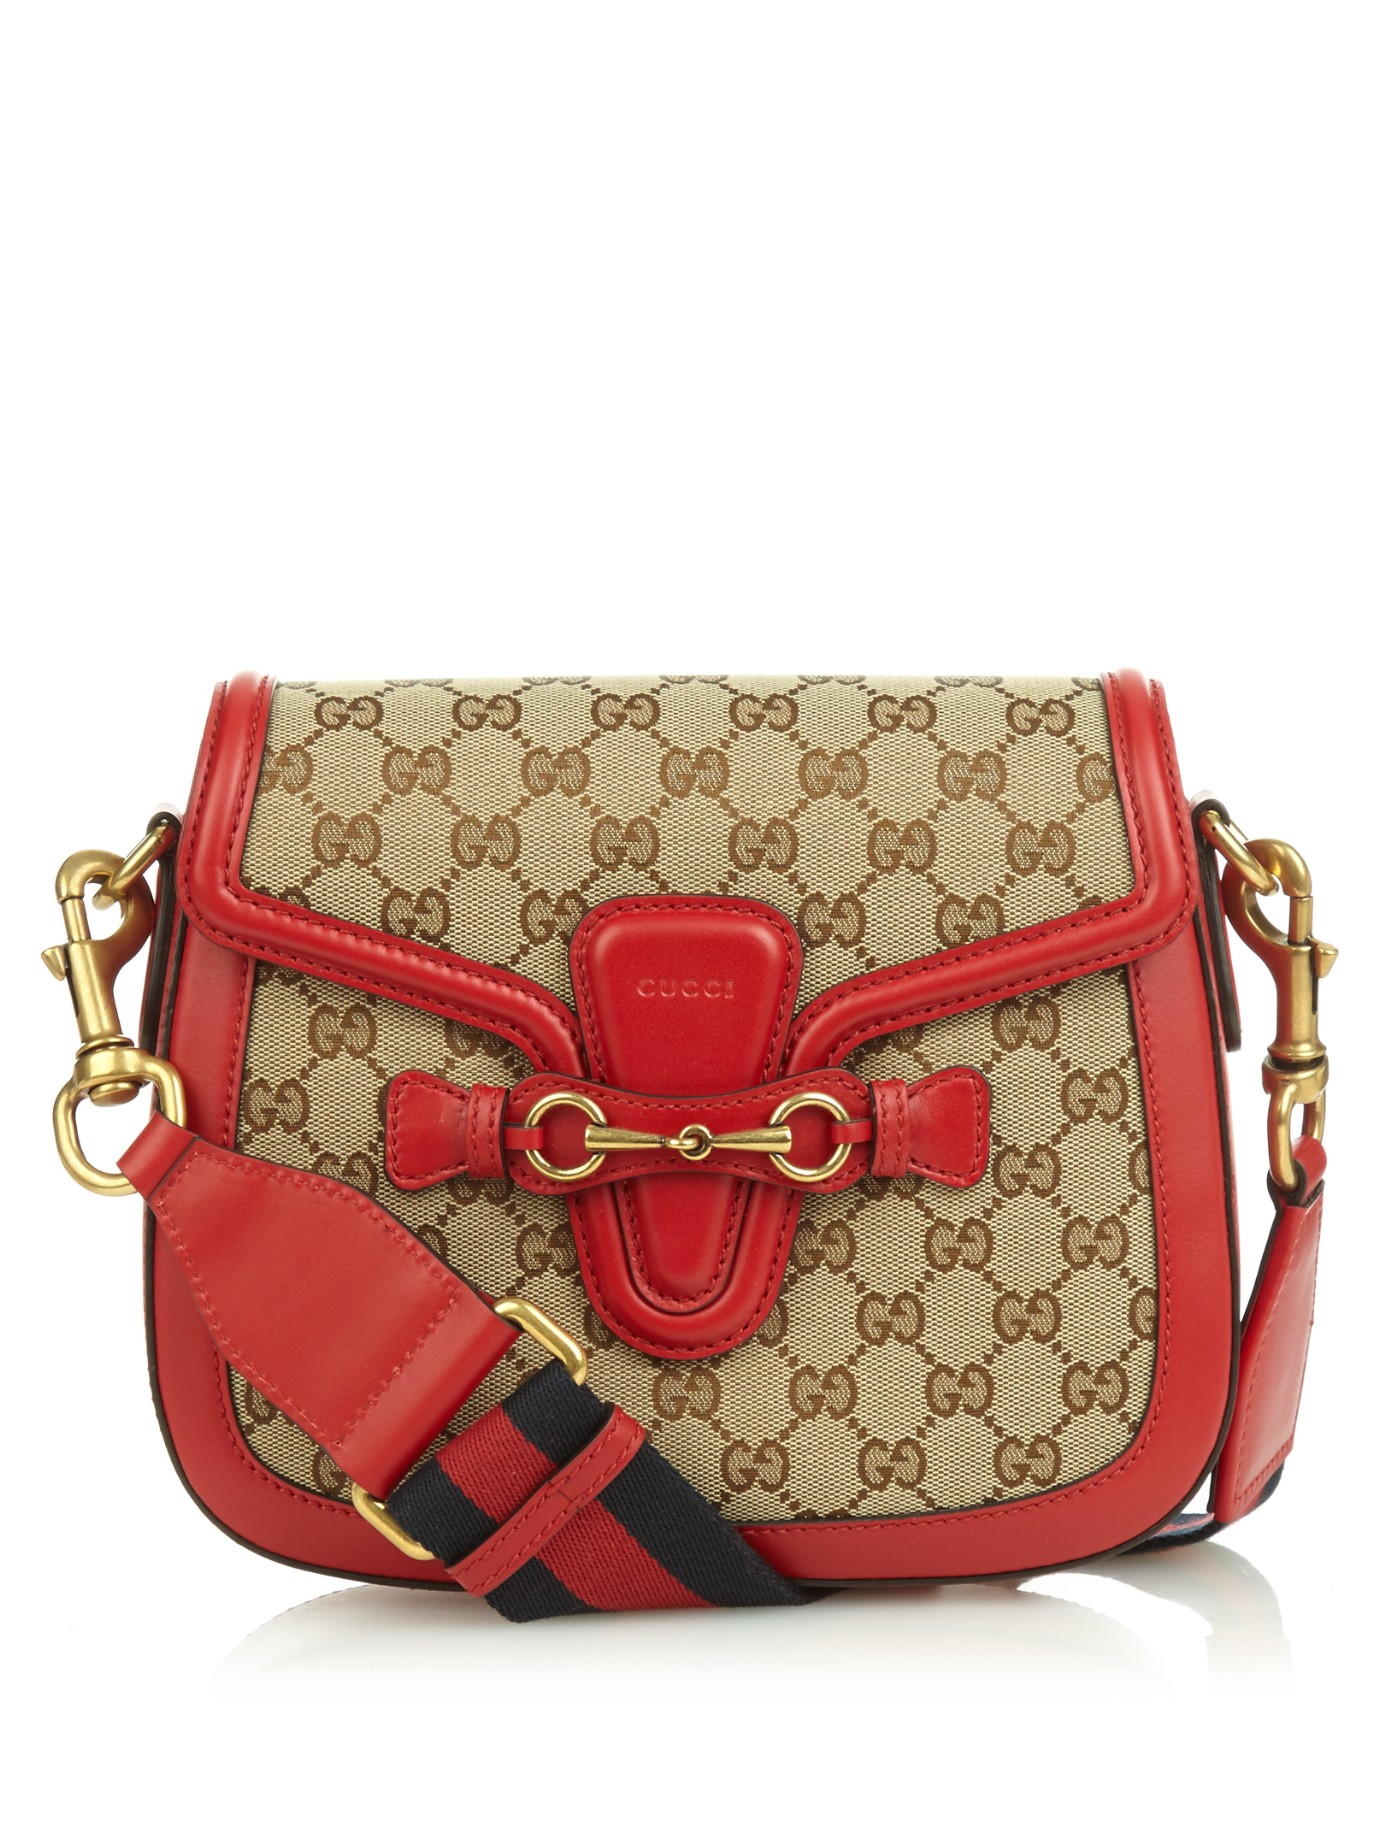 a344a2d181 Gucci Lady Web Medium Canvas And Leather Shoulder Bag in Red - Lyst